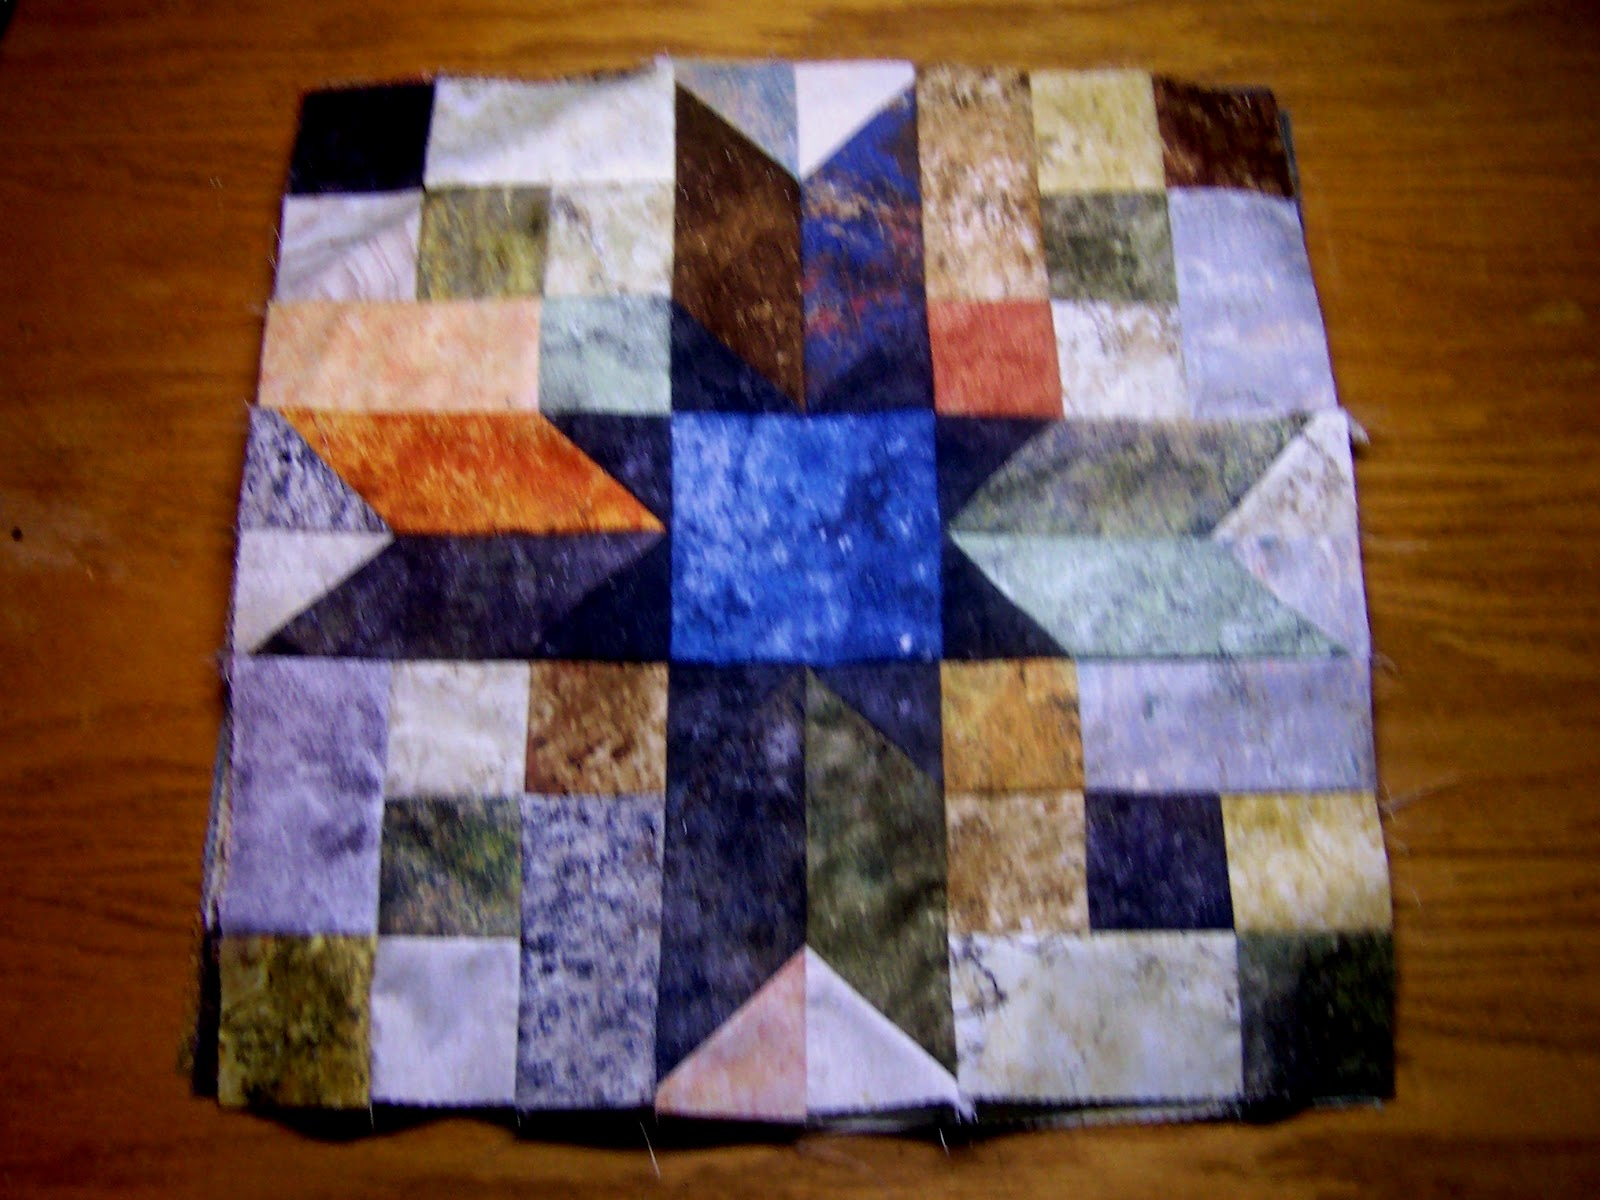 Jane's Quilting: The Smoky River Quilt : smokey river quilt kit - Adamdwight.com